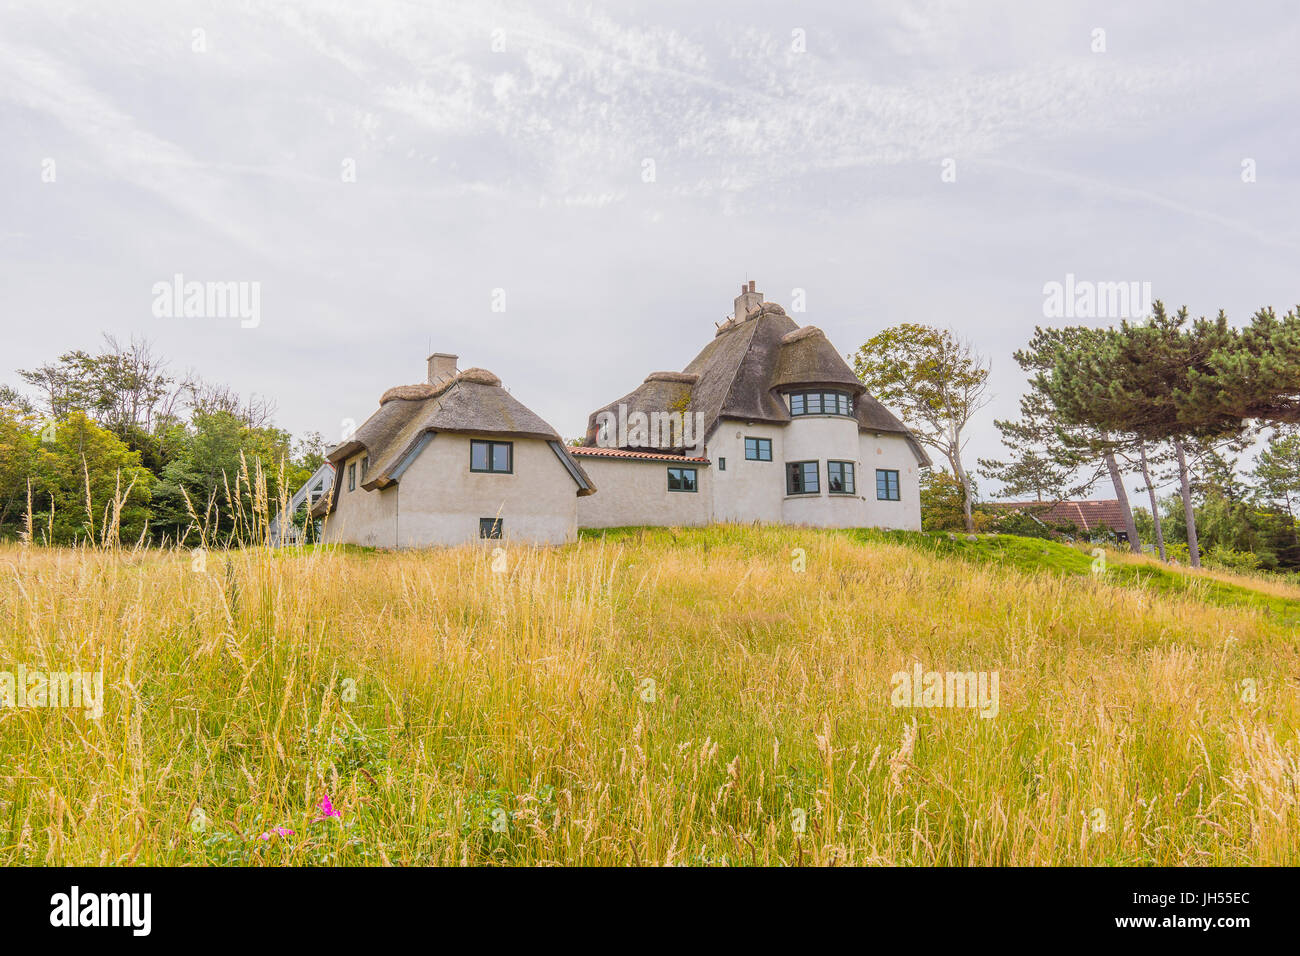 The residence of the polar explorer Knud Rasmussen, now a museum. He lived here between his expeditions, Hundestad, - Stock Image